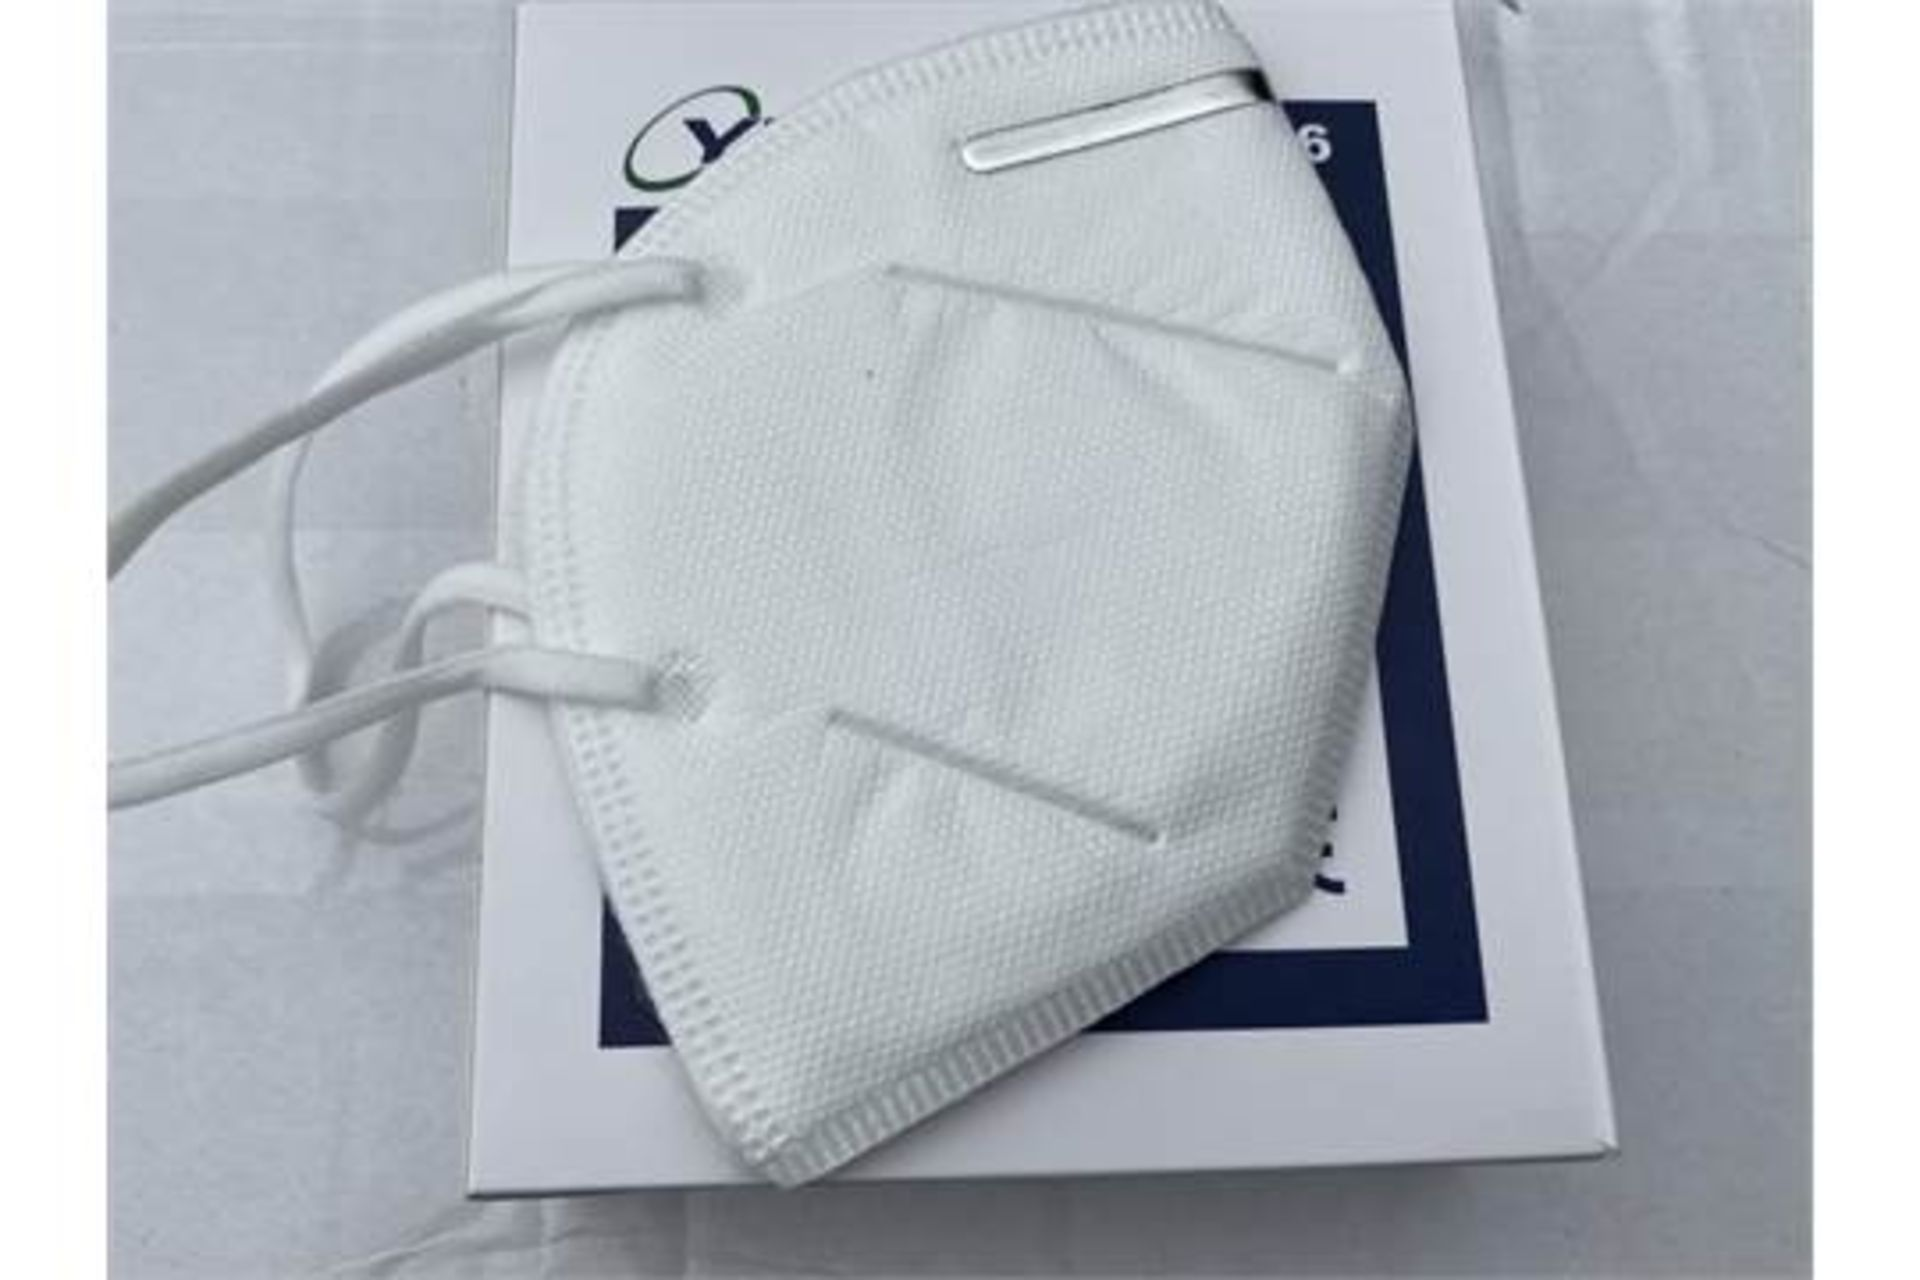 1,250X FFP2/KN95 FOLDING PROTECTIVE FACE MASK - Image 4 of 4